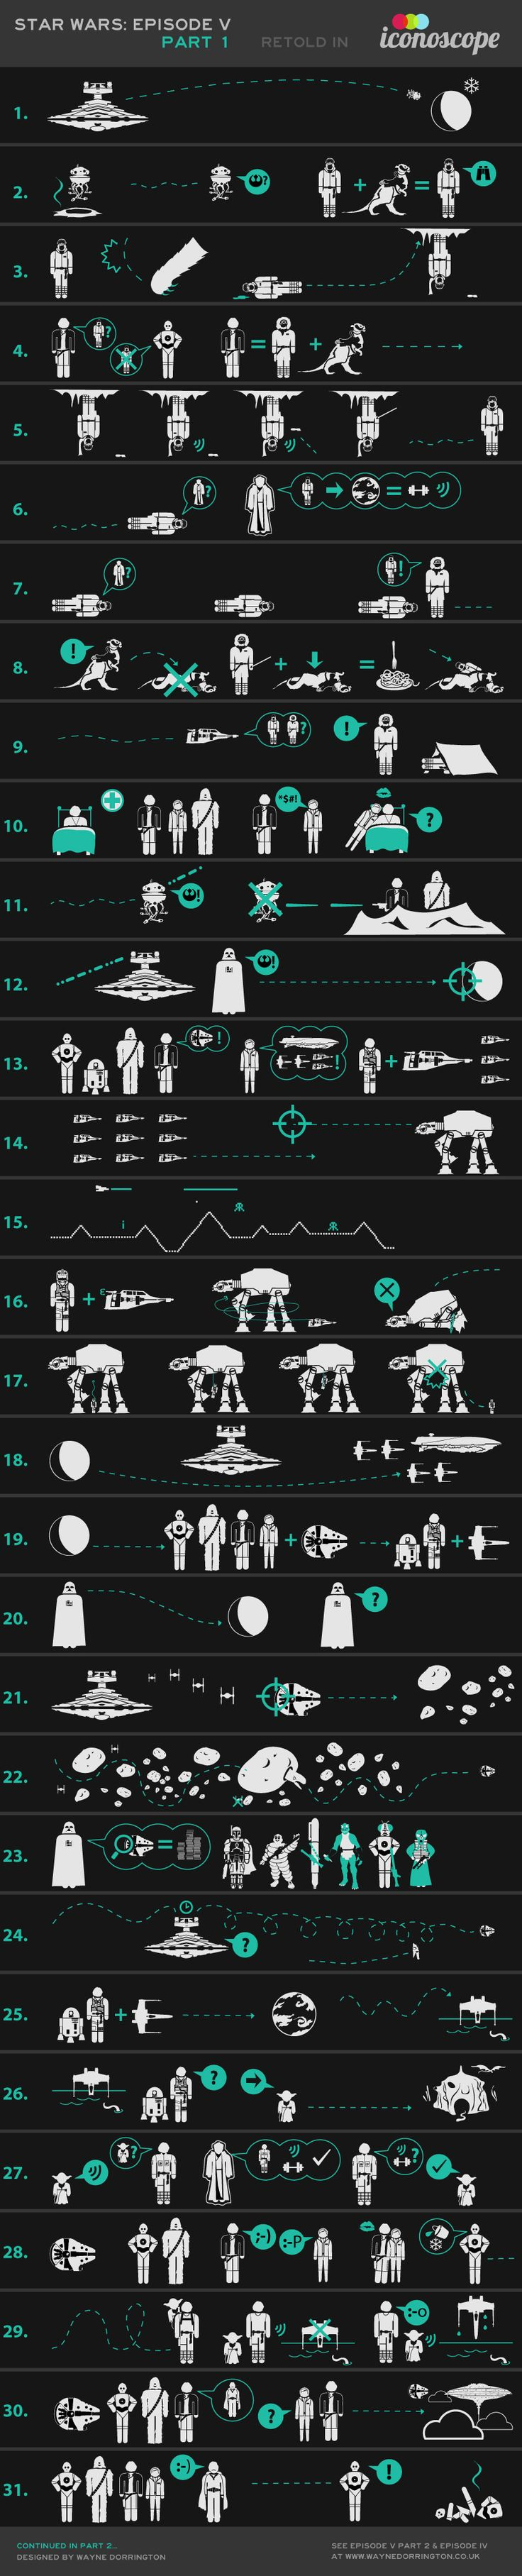 Star Wars Episode V Iconoscope